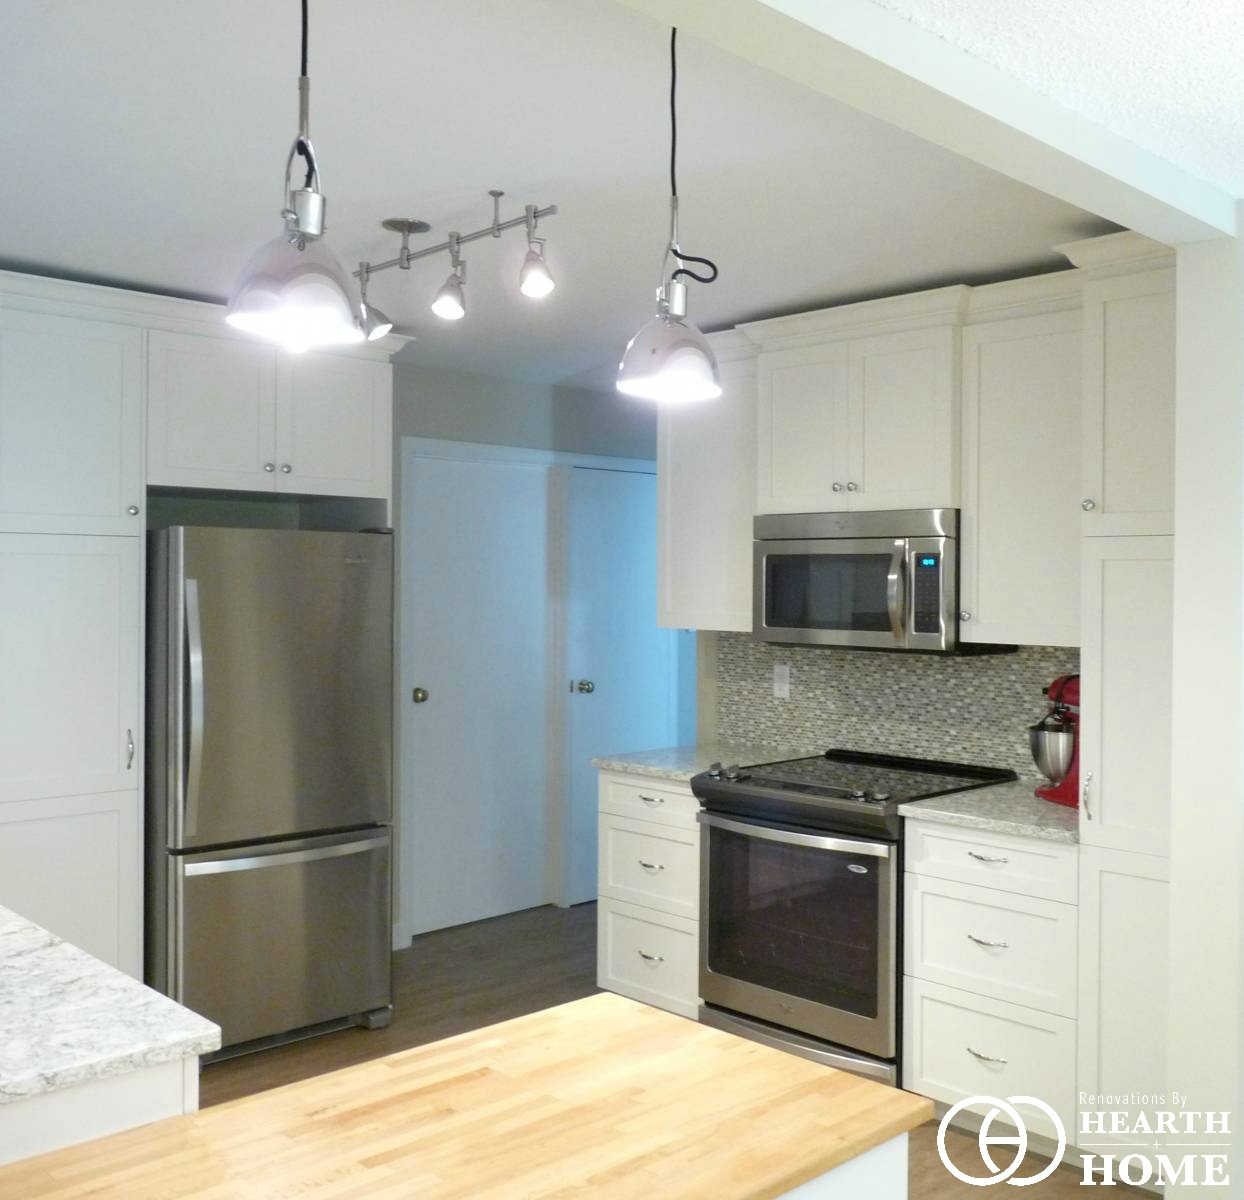 Kitchens - Gallery - Hearth & Home Renovations